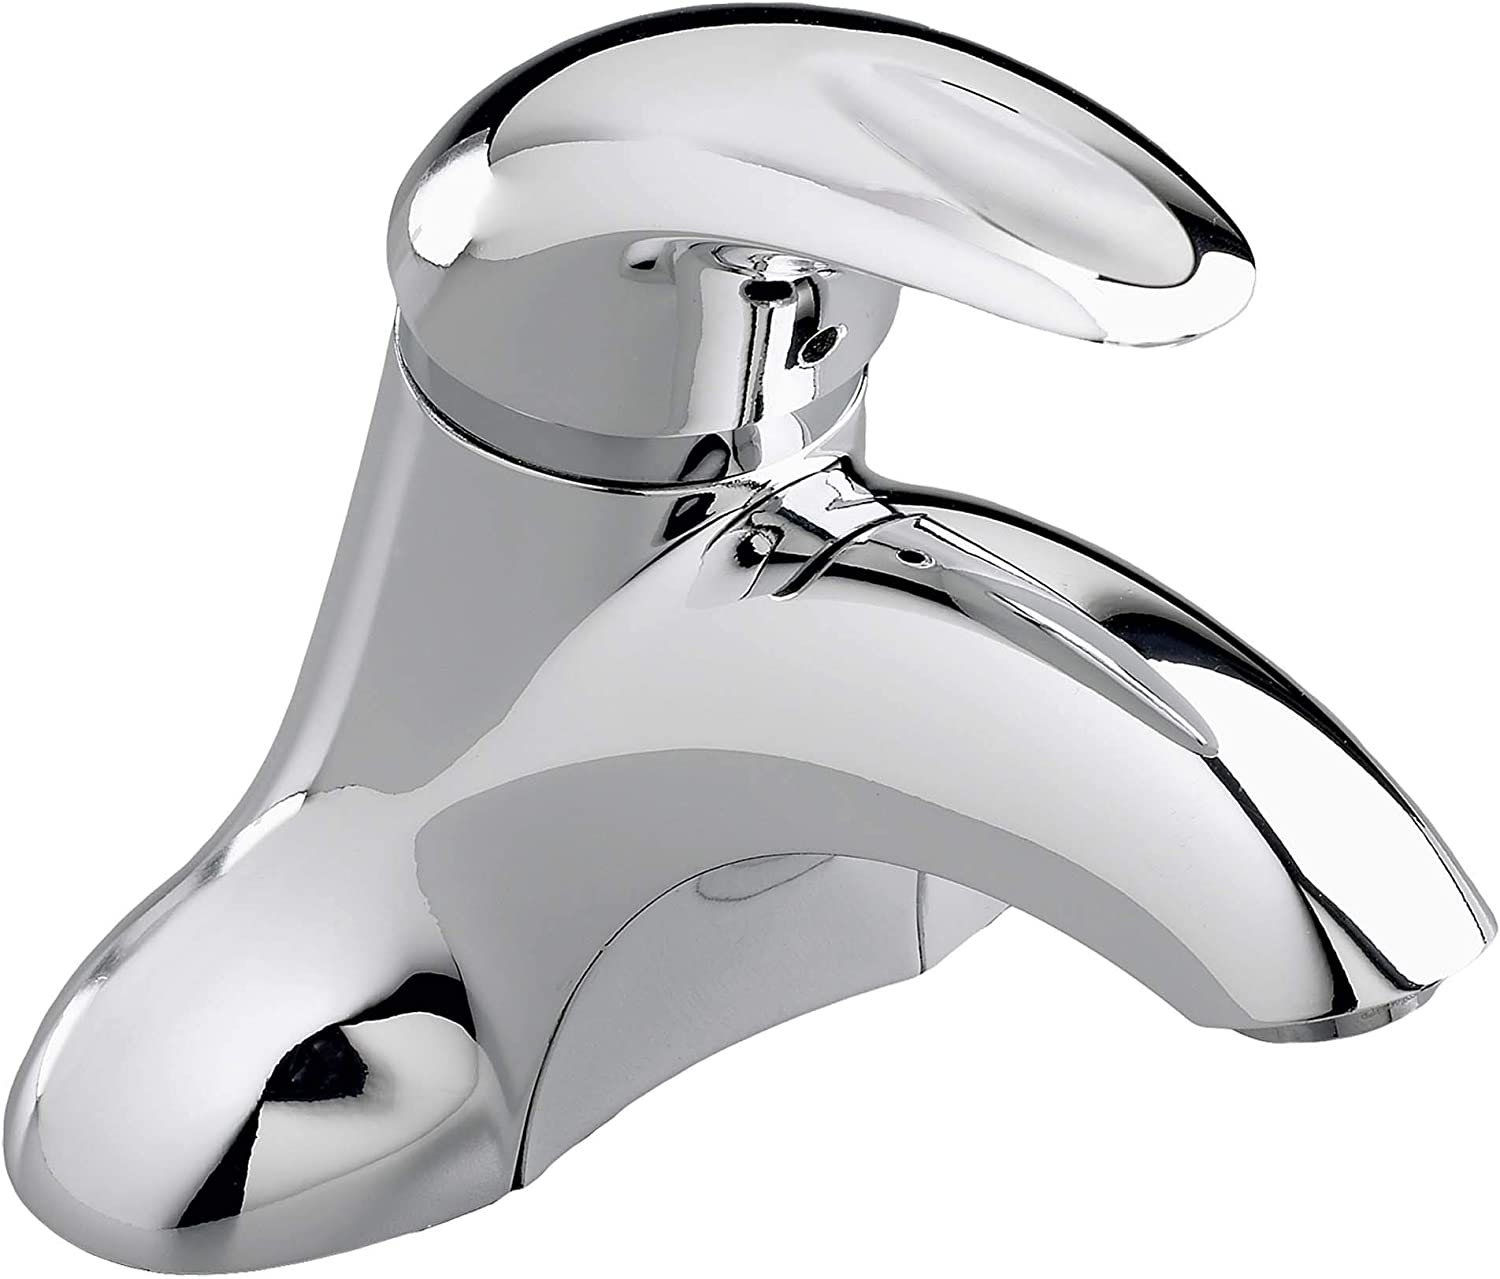 American Standard 7385.000.002 Reliant 3 Bathroom Centerset Faucet, Polished Chrome